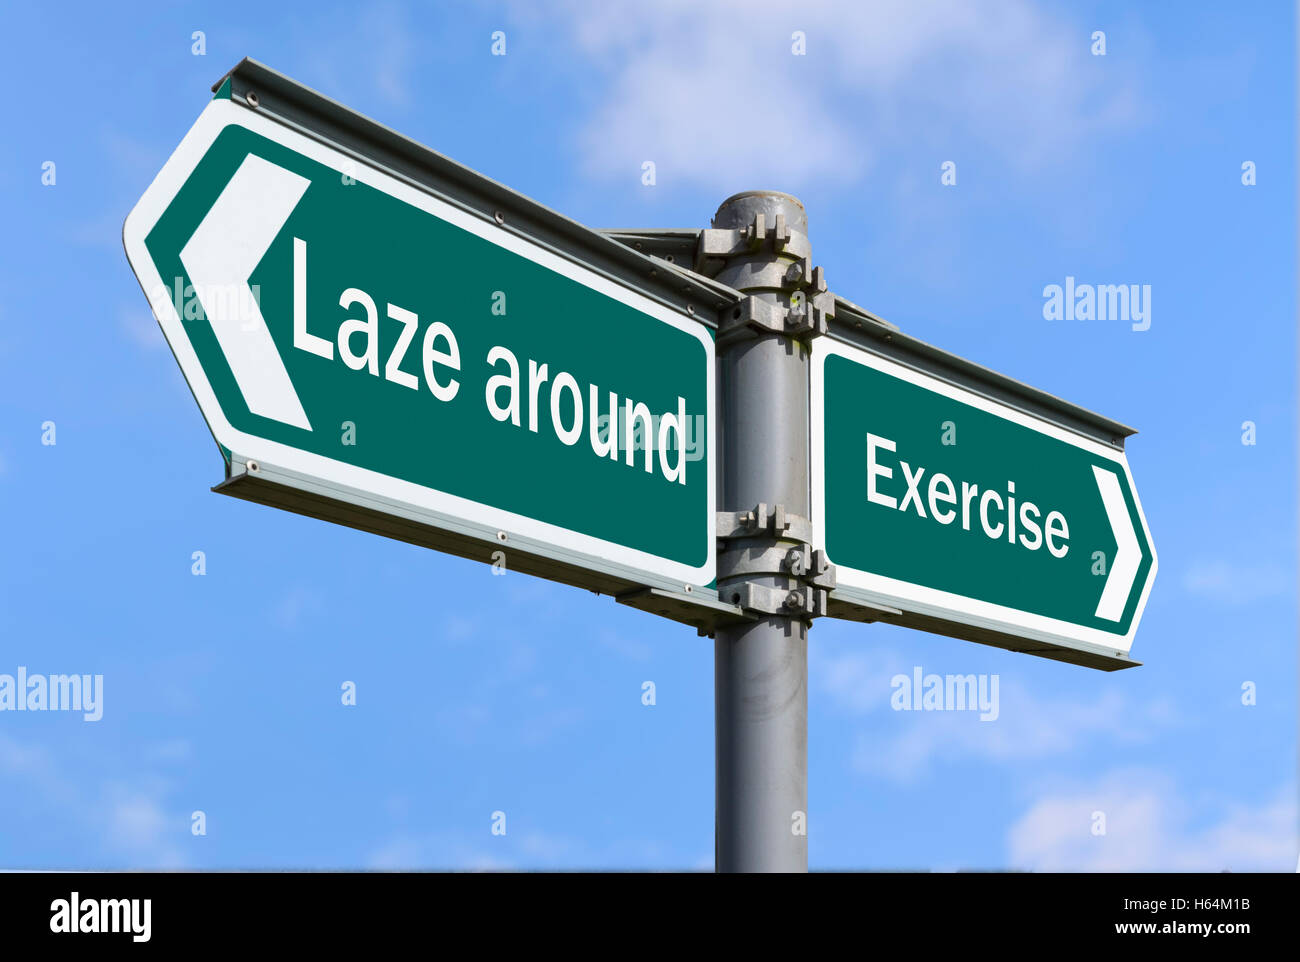 Lifestyle. Exercise or Lazy concept sign. Exercising concept sign. - Stock Image